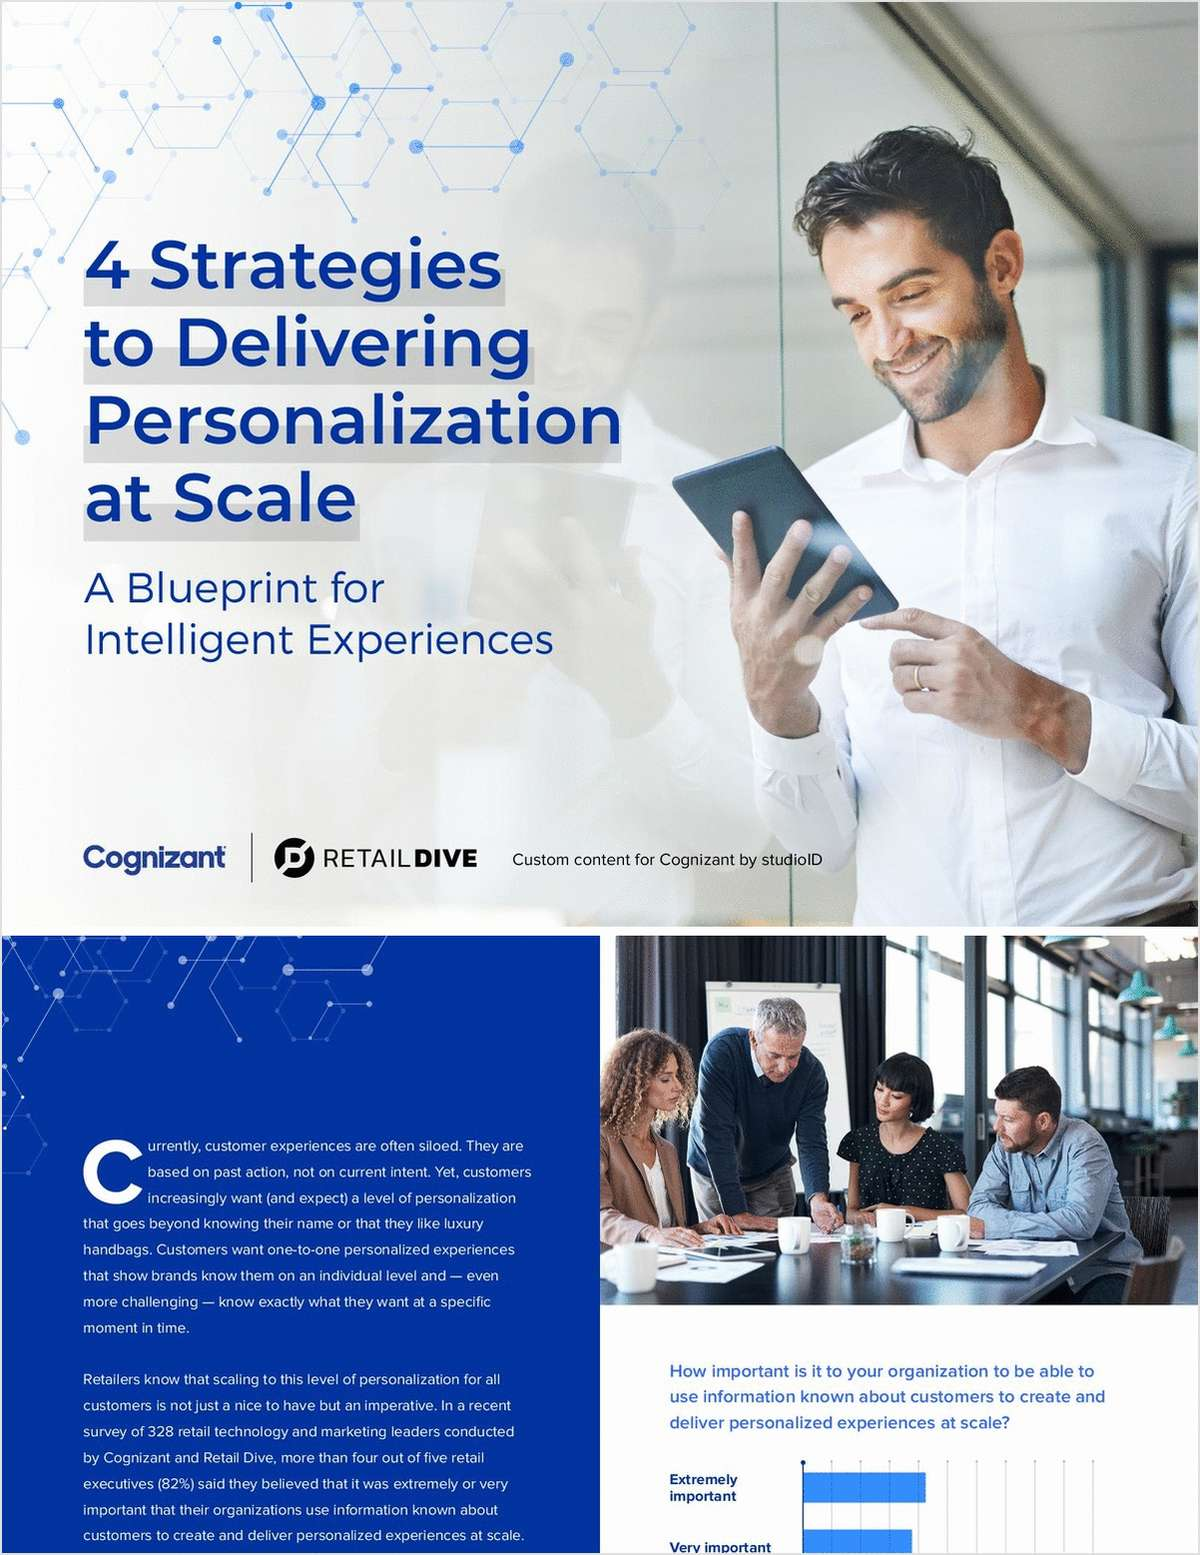 4 Strategies to Delivering Personalization at Scale